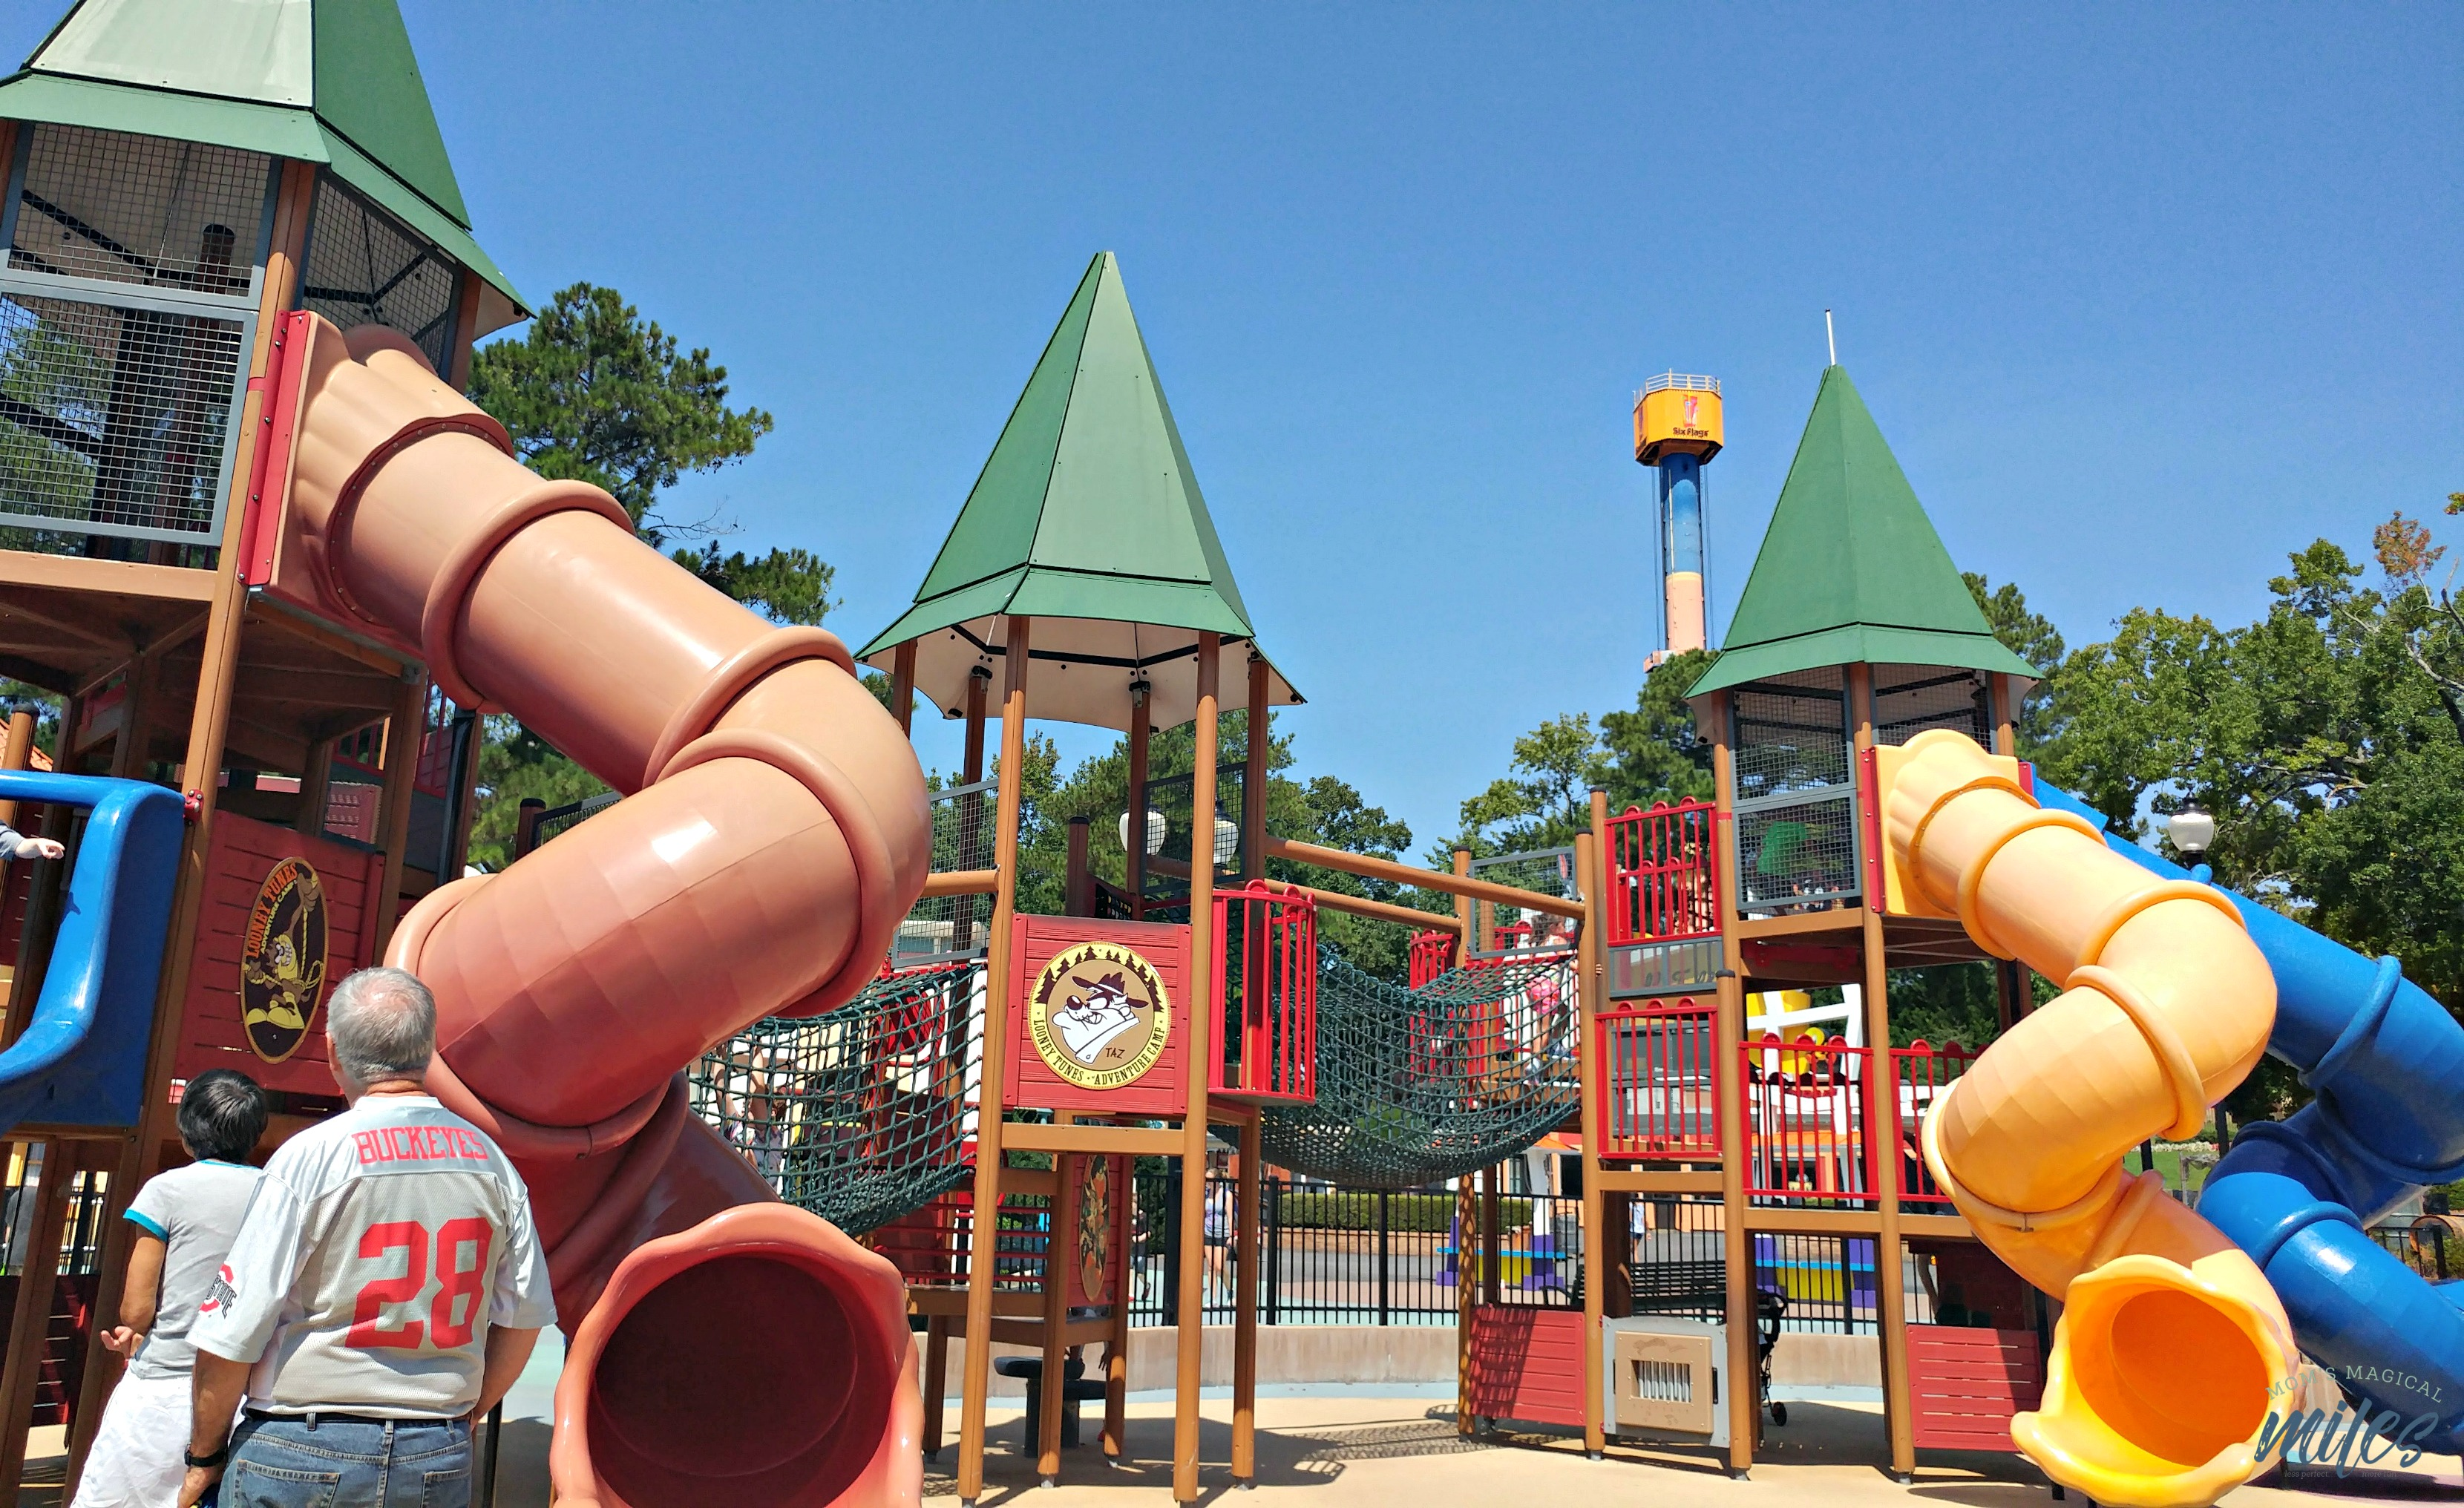 Enjoy some low-tech fun for the youngest of guests at Six Flags Over Georgia in Bugs Bunny Boomtown.